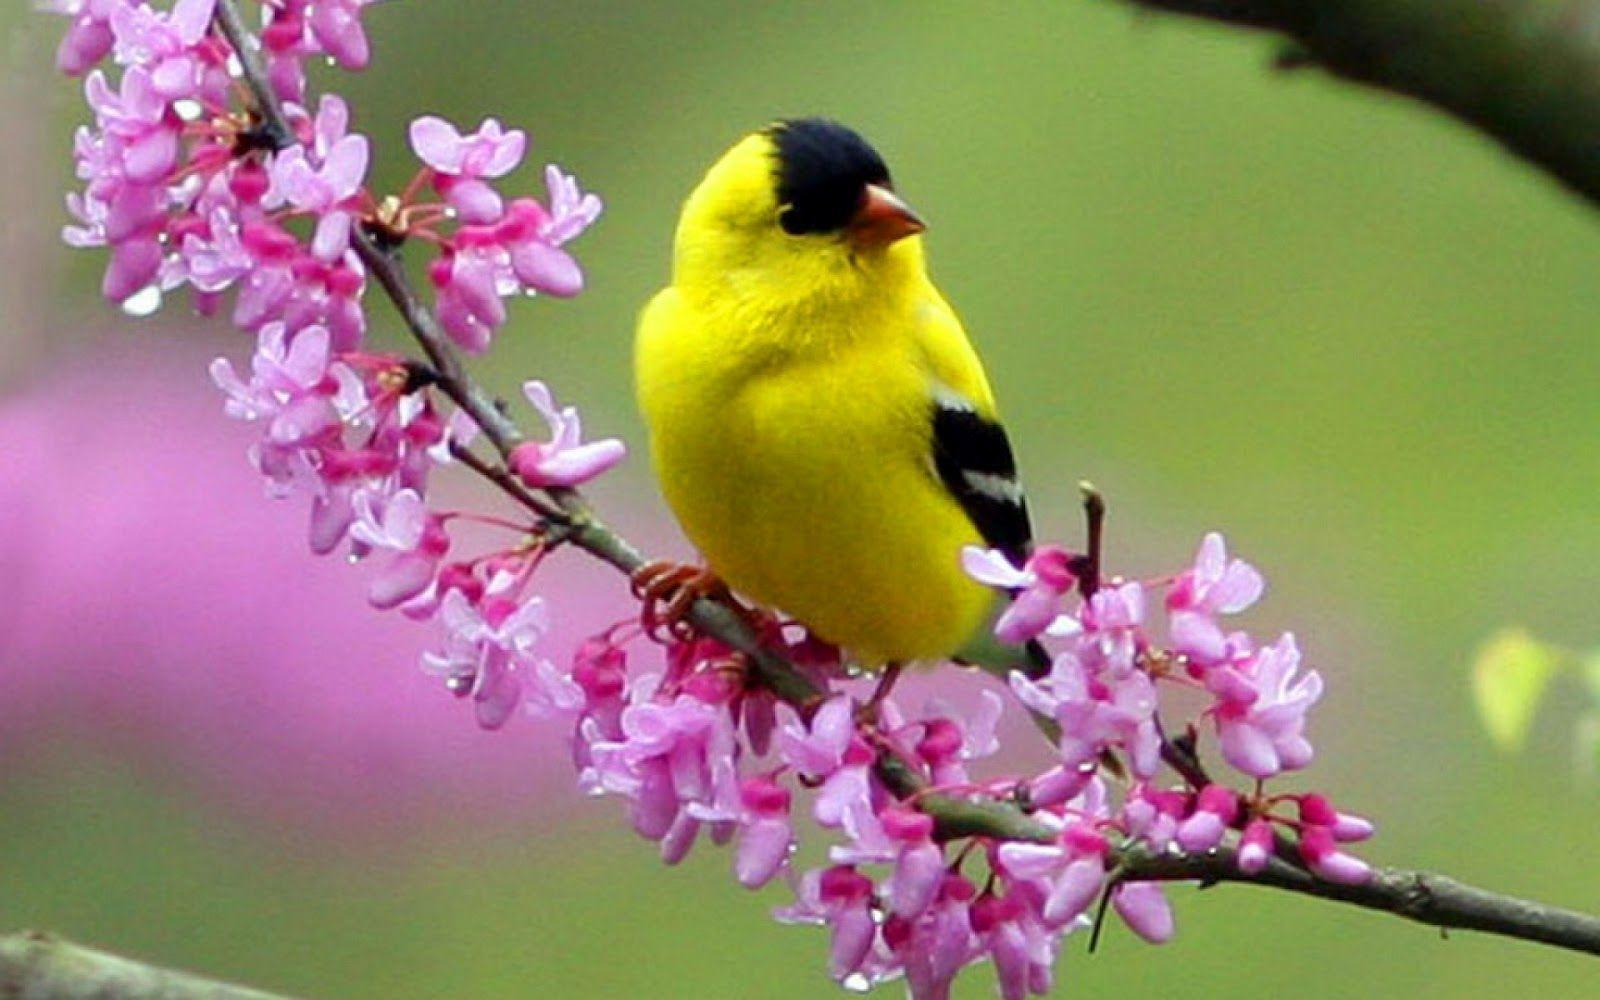 Colorful Little Bird HD Wallpaper - HD Wallpapers Inn